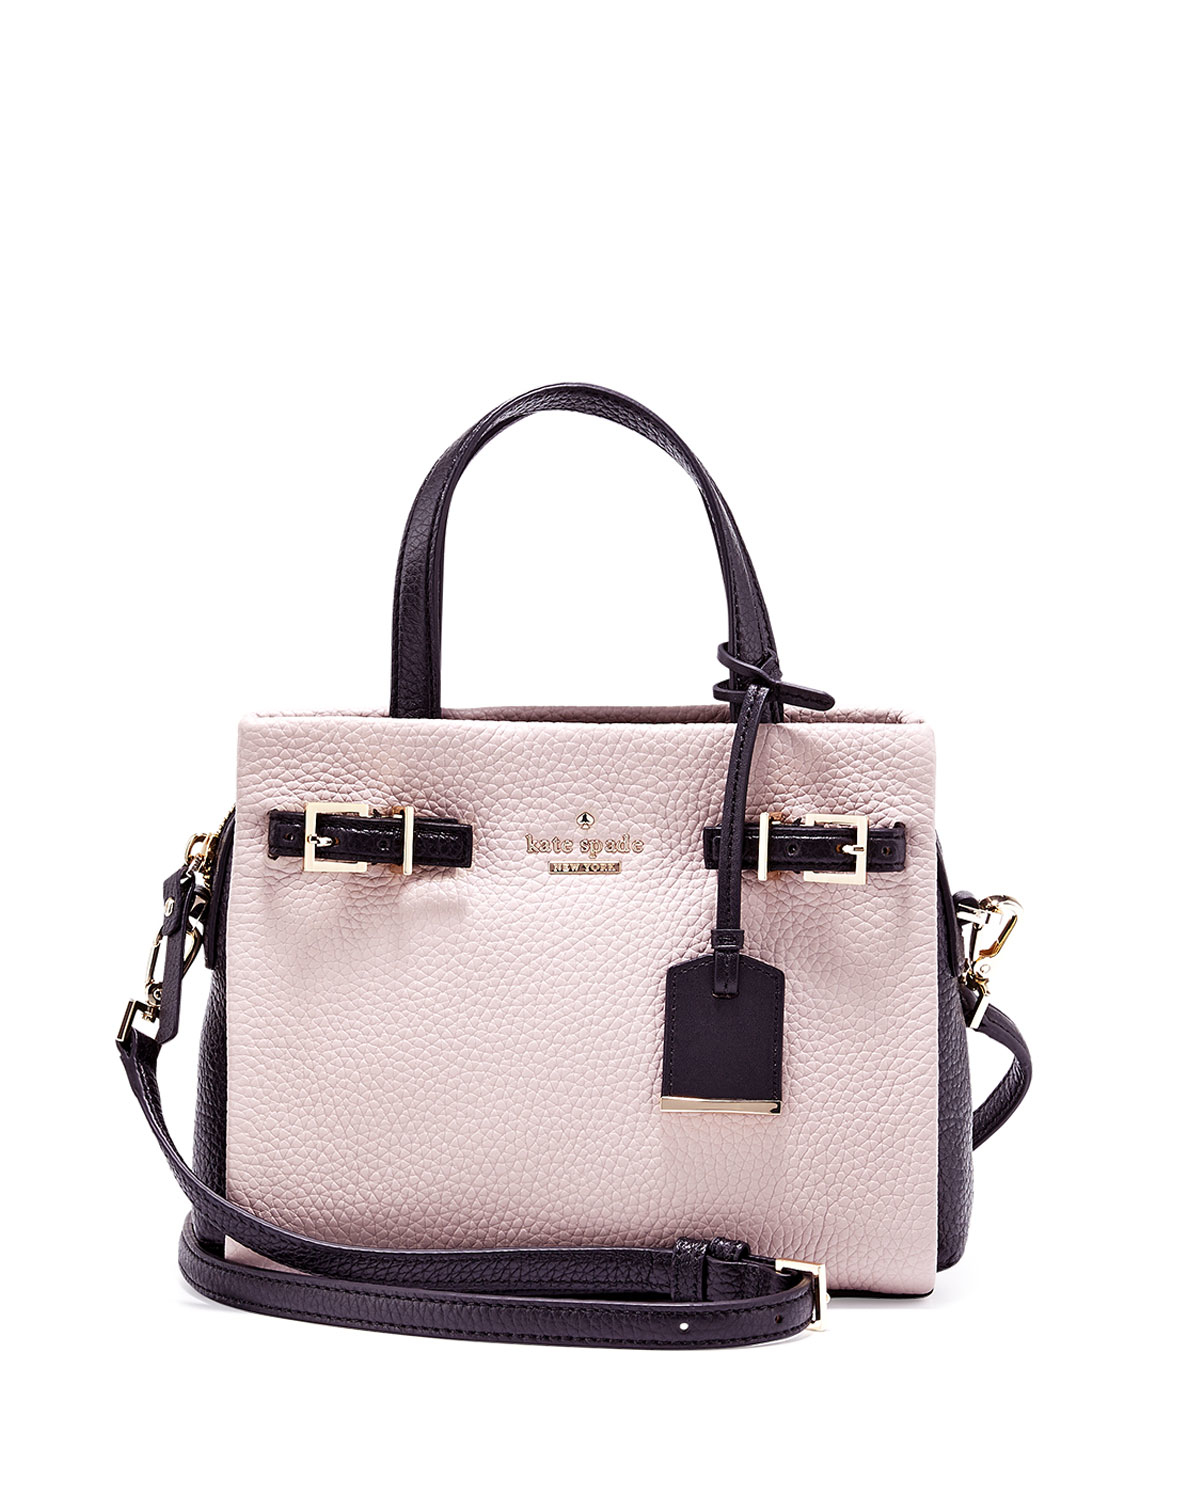 Lyst - Kate Spade Holden Street Small Lanie Tote Bag in Pink 46a3d62642